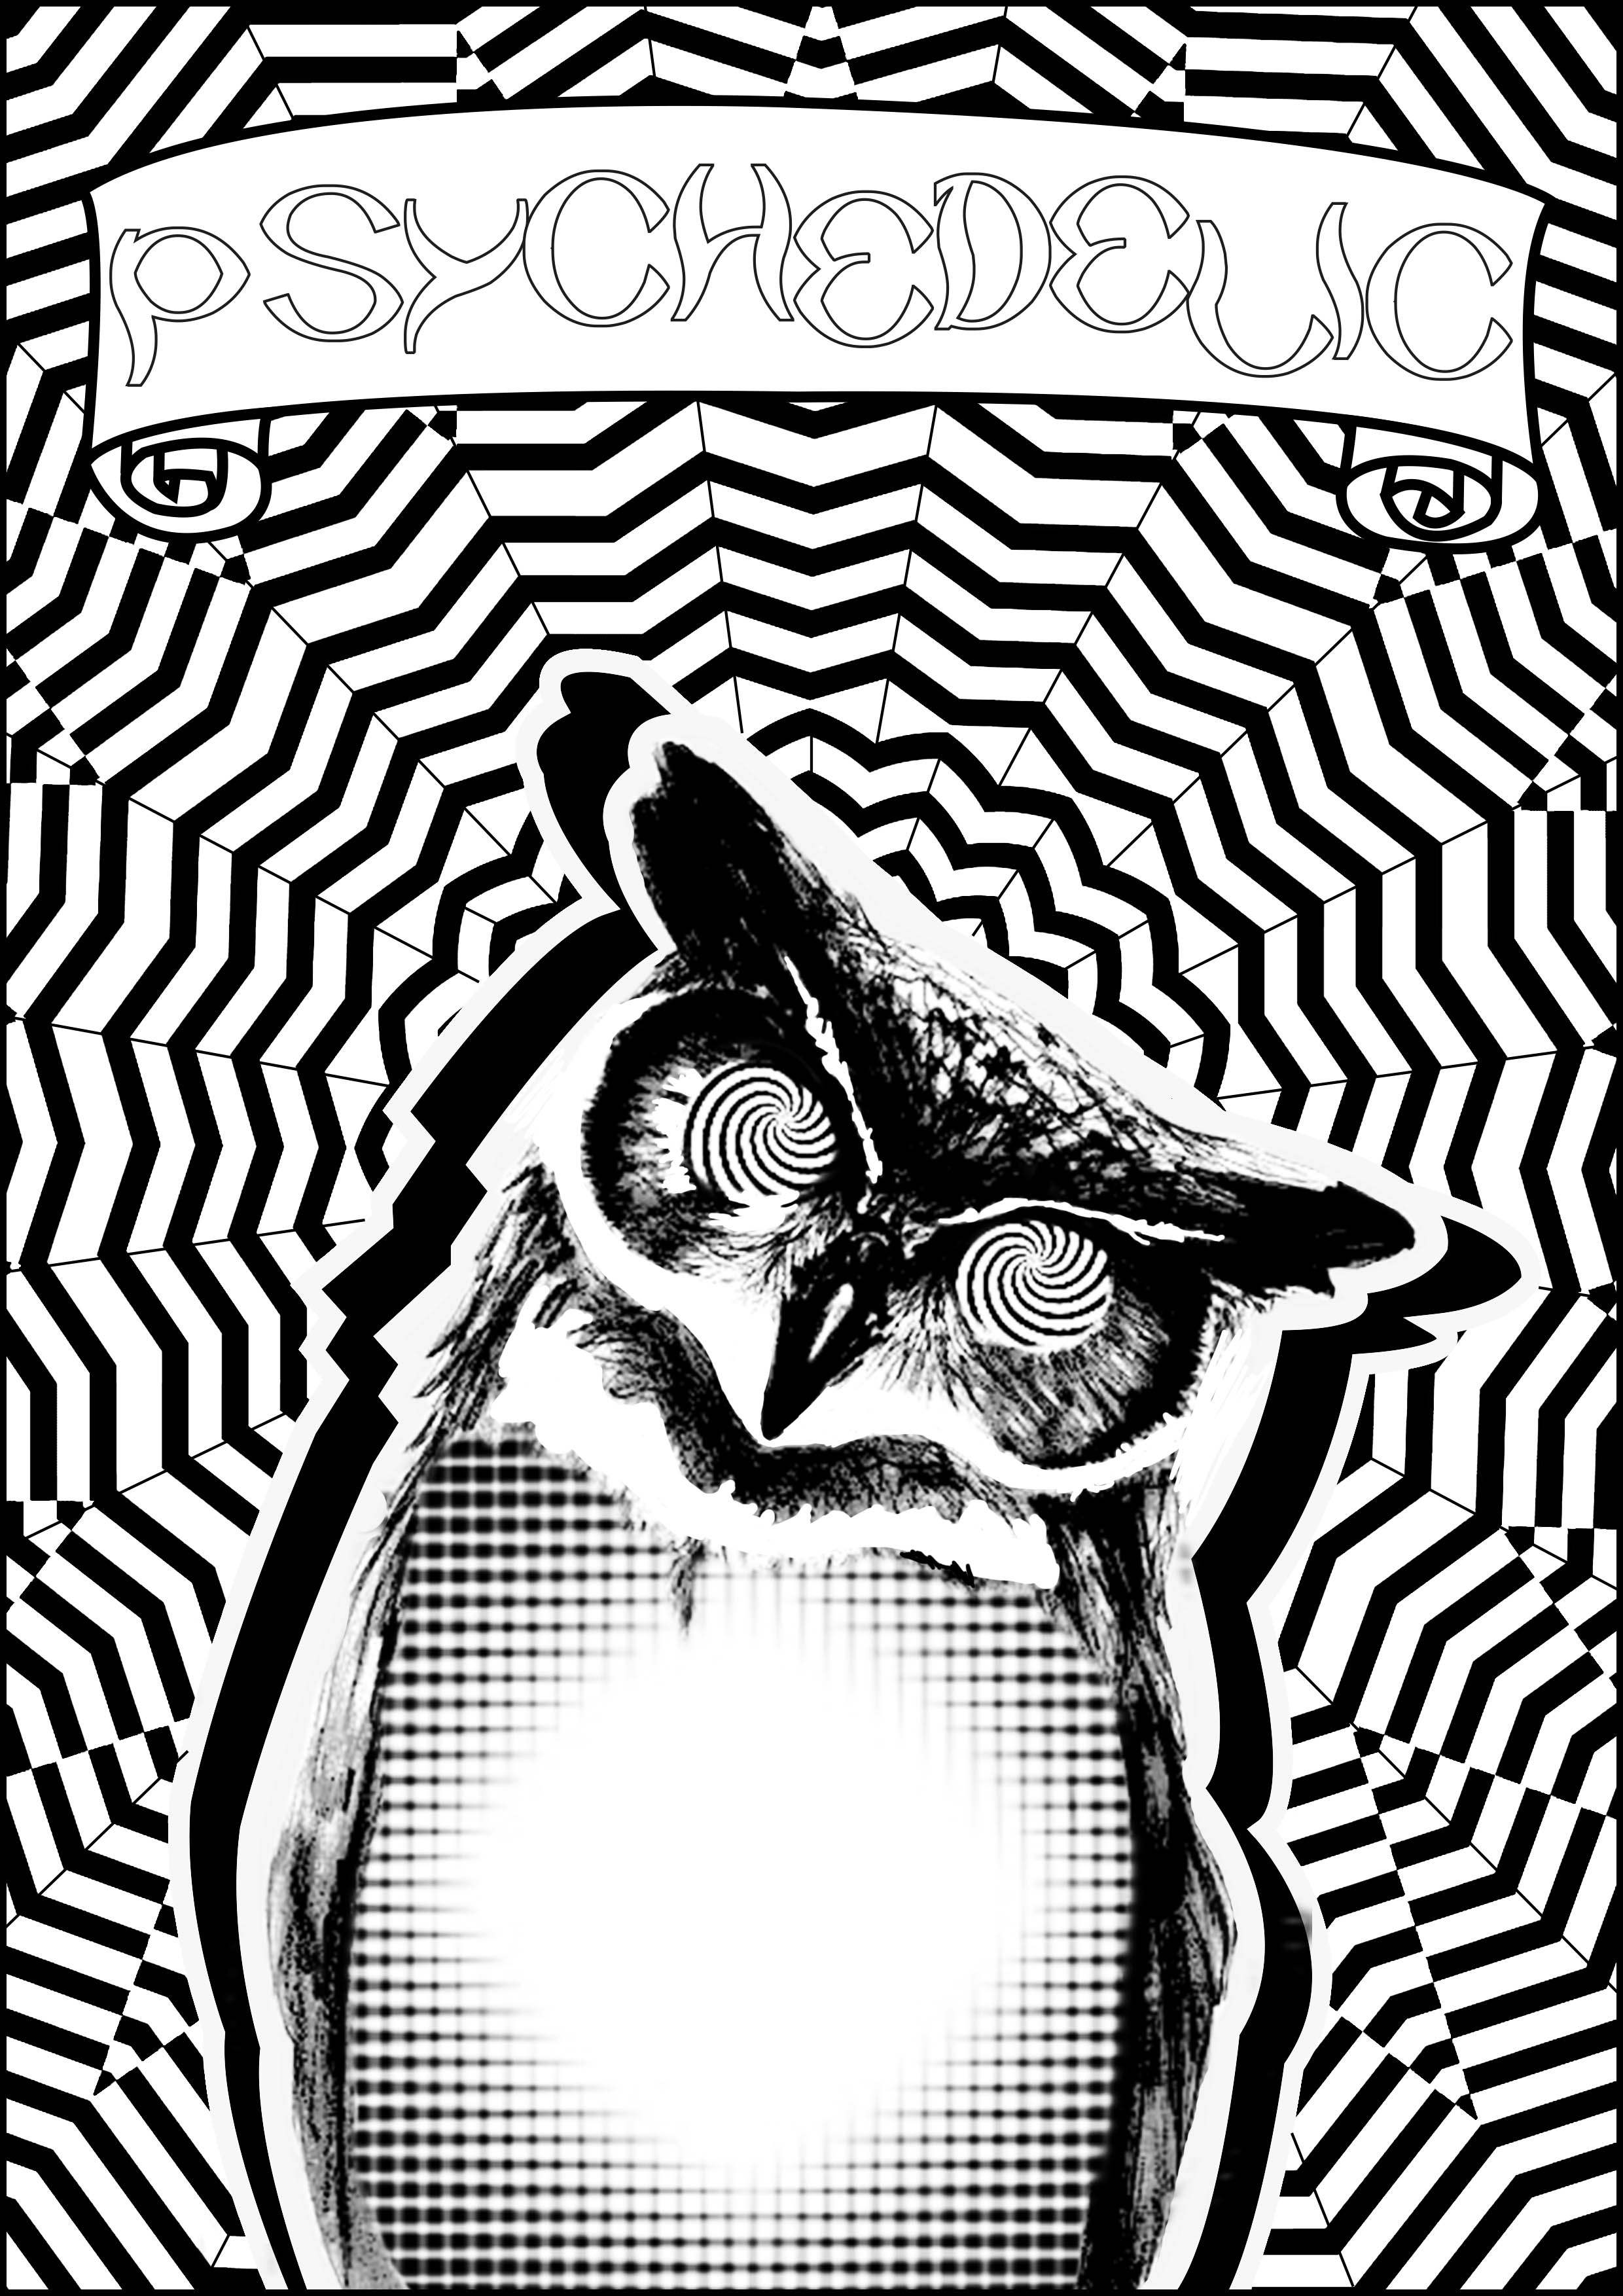 Color this psychedelic Owl ! | From the gallery : Psychedelic | Artist : Allan